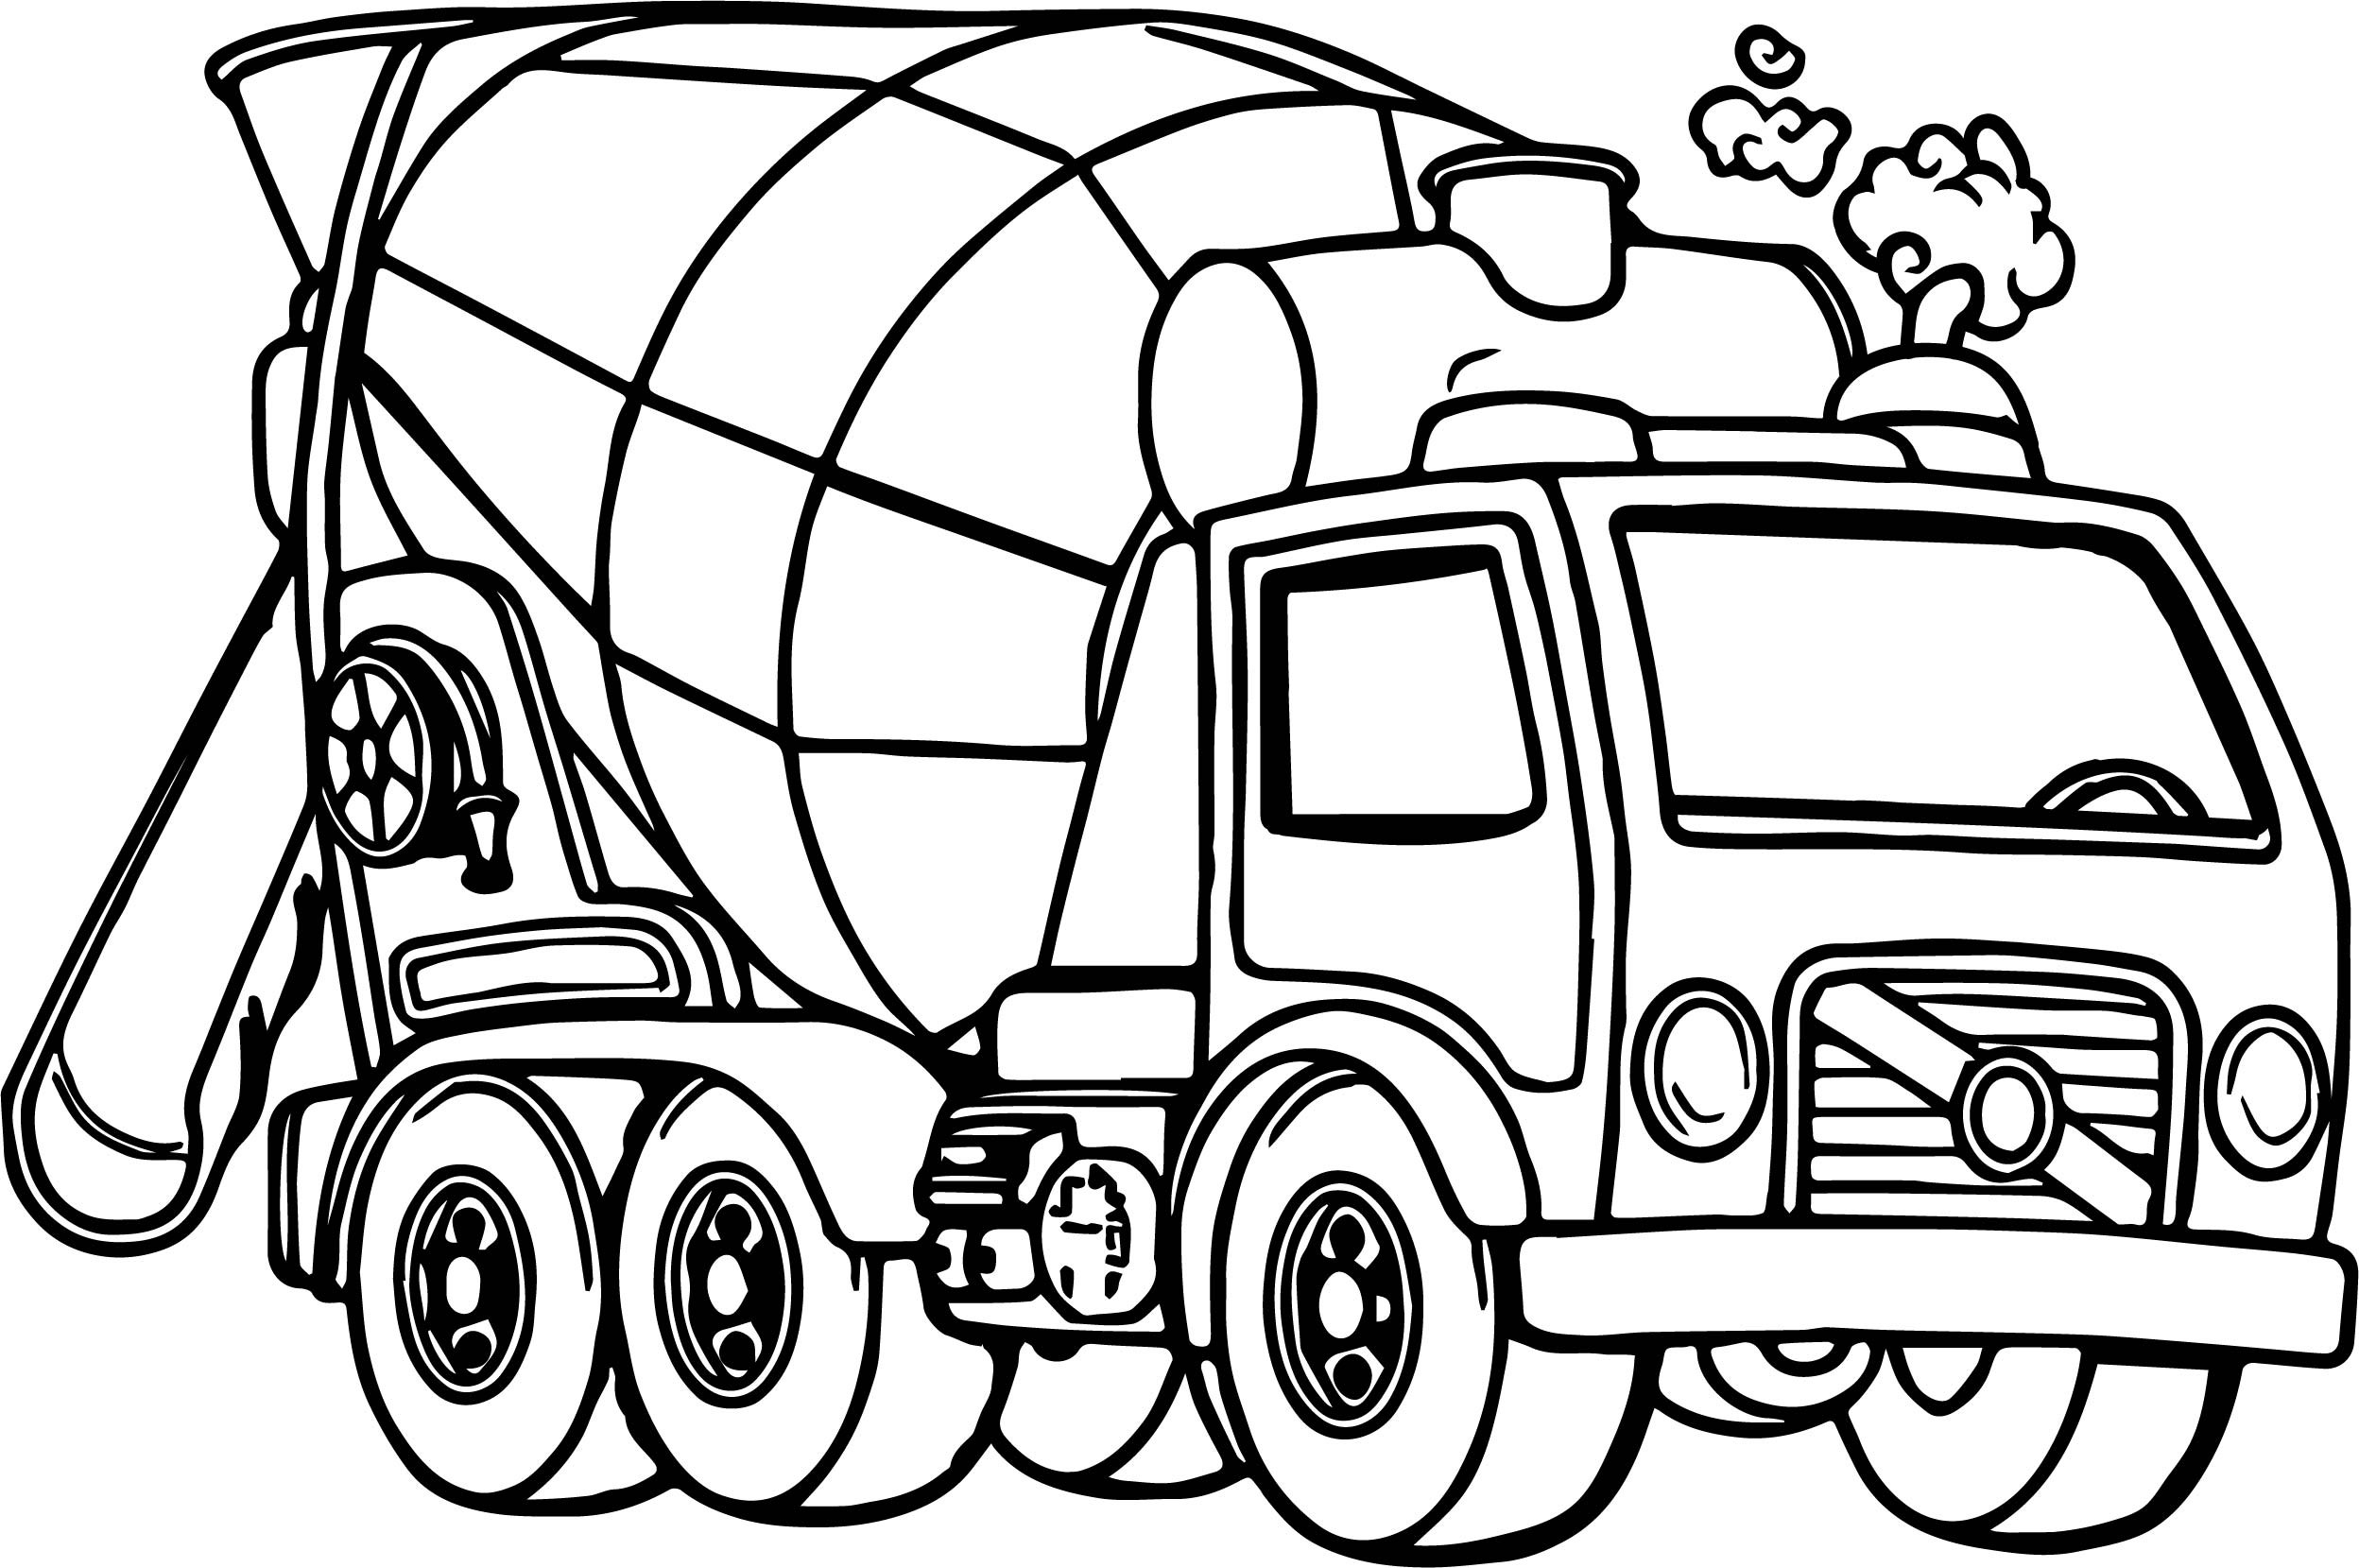 colouring in trucks truck coloring pages coloringrocks in colouring trucks